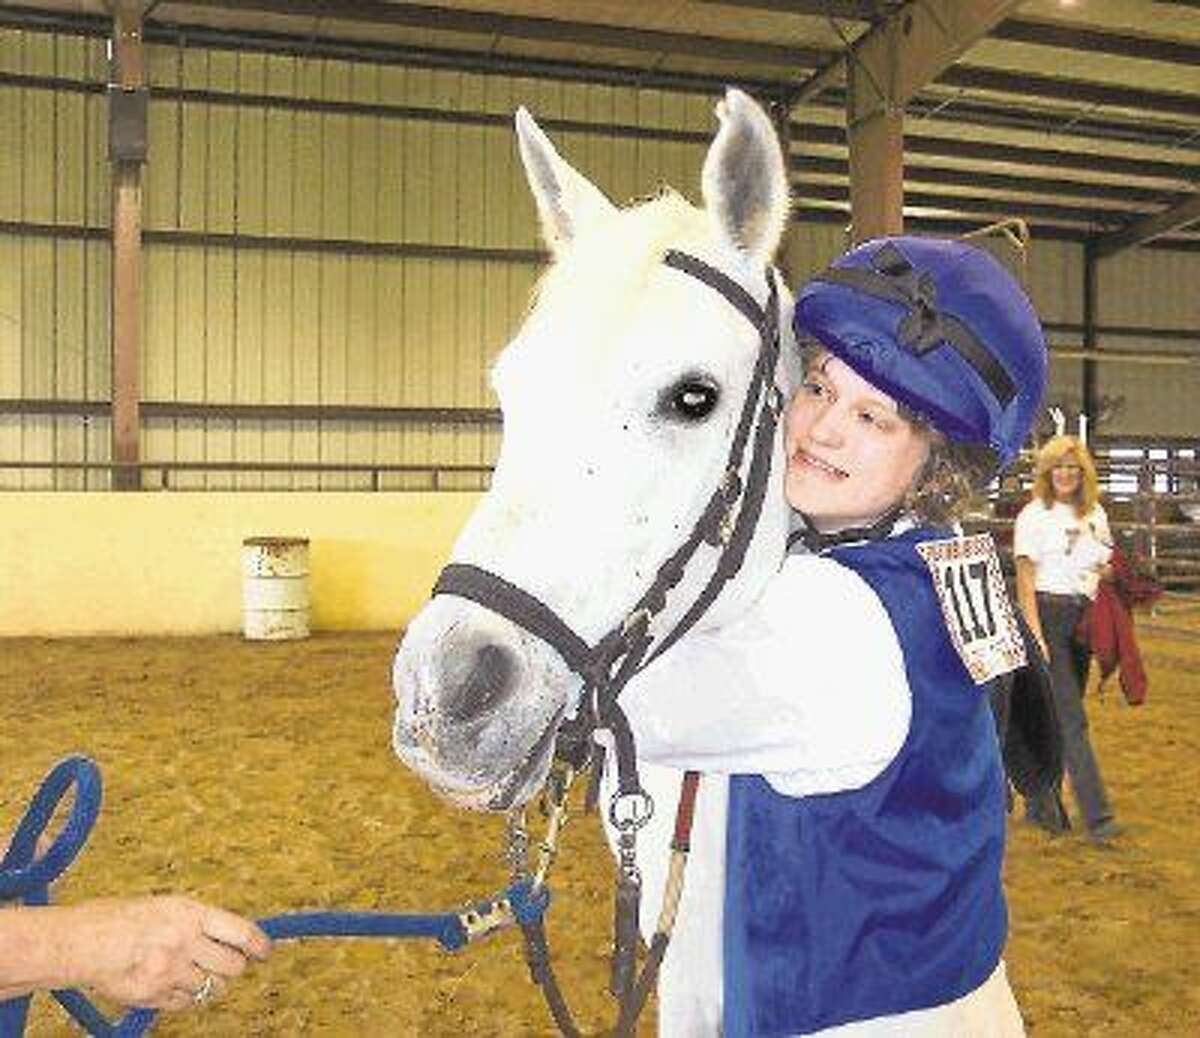 According to SIRE's website, more than 30 percent of their riders are on the Autism spectrum which often limits their social skills, intellectual development, focus, and sometimes leaves them without a communication outlet.